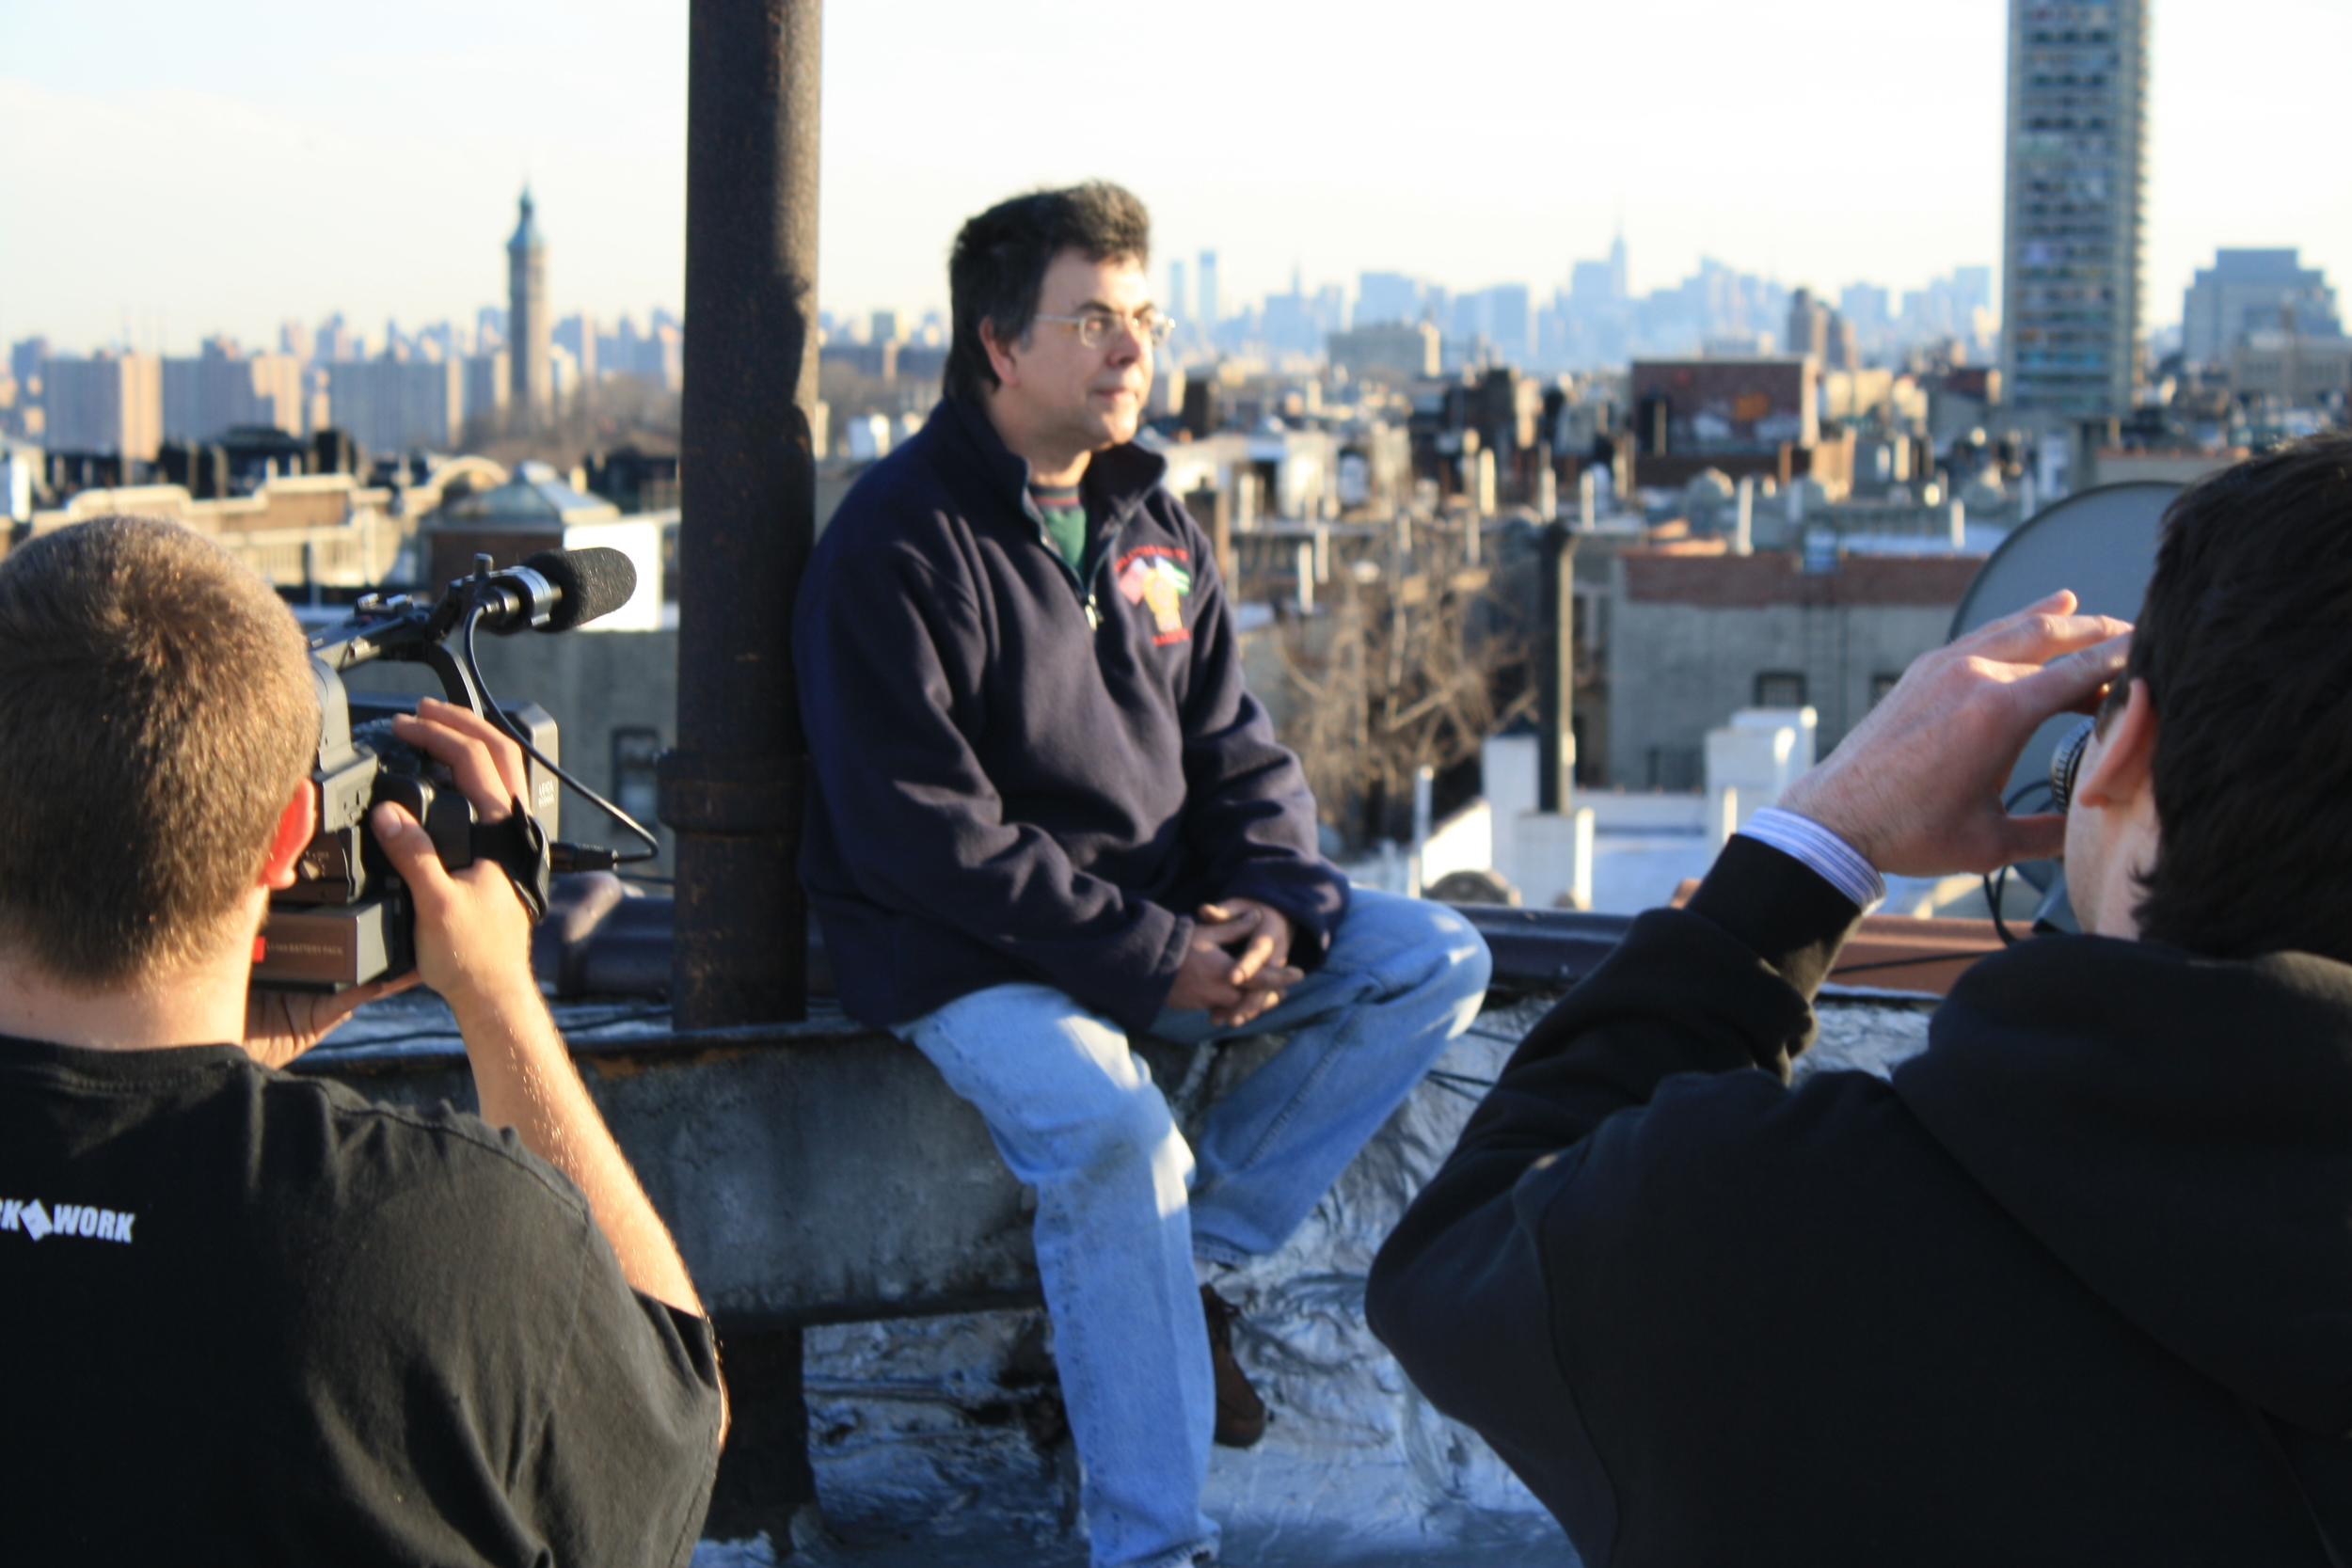 TAKI 183 being interviewed for Wall Writers